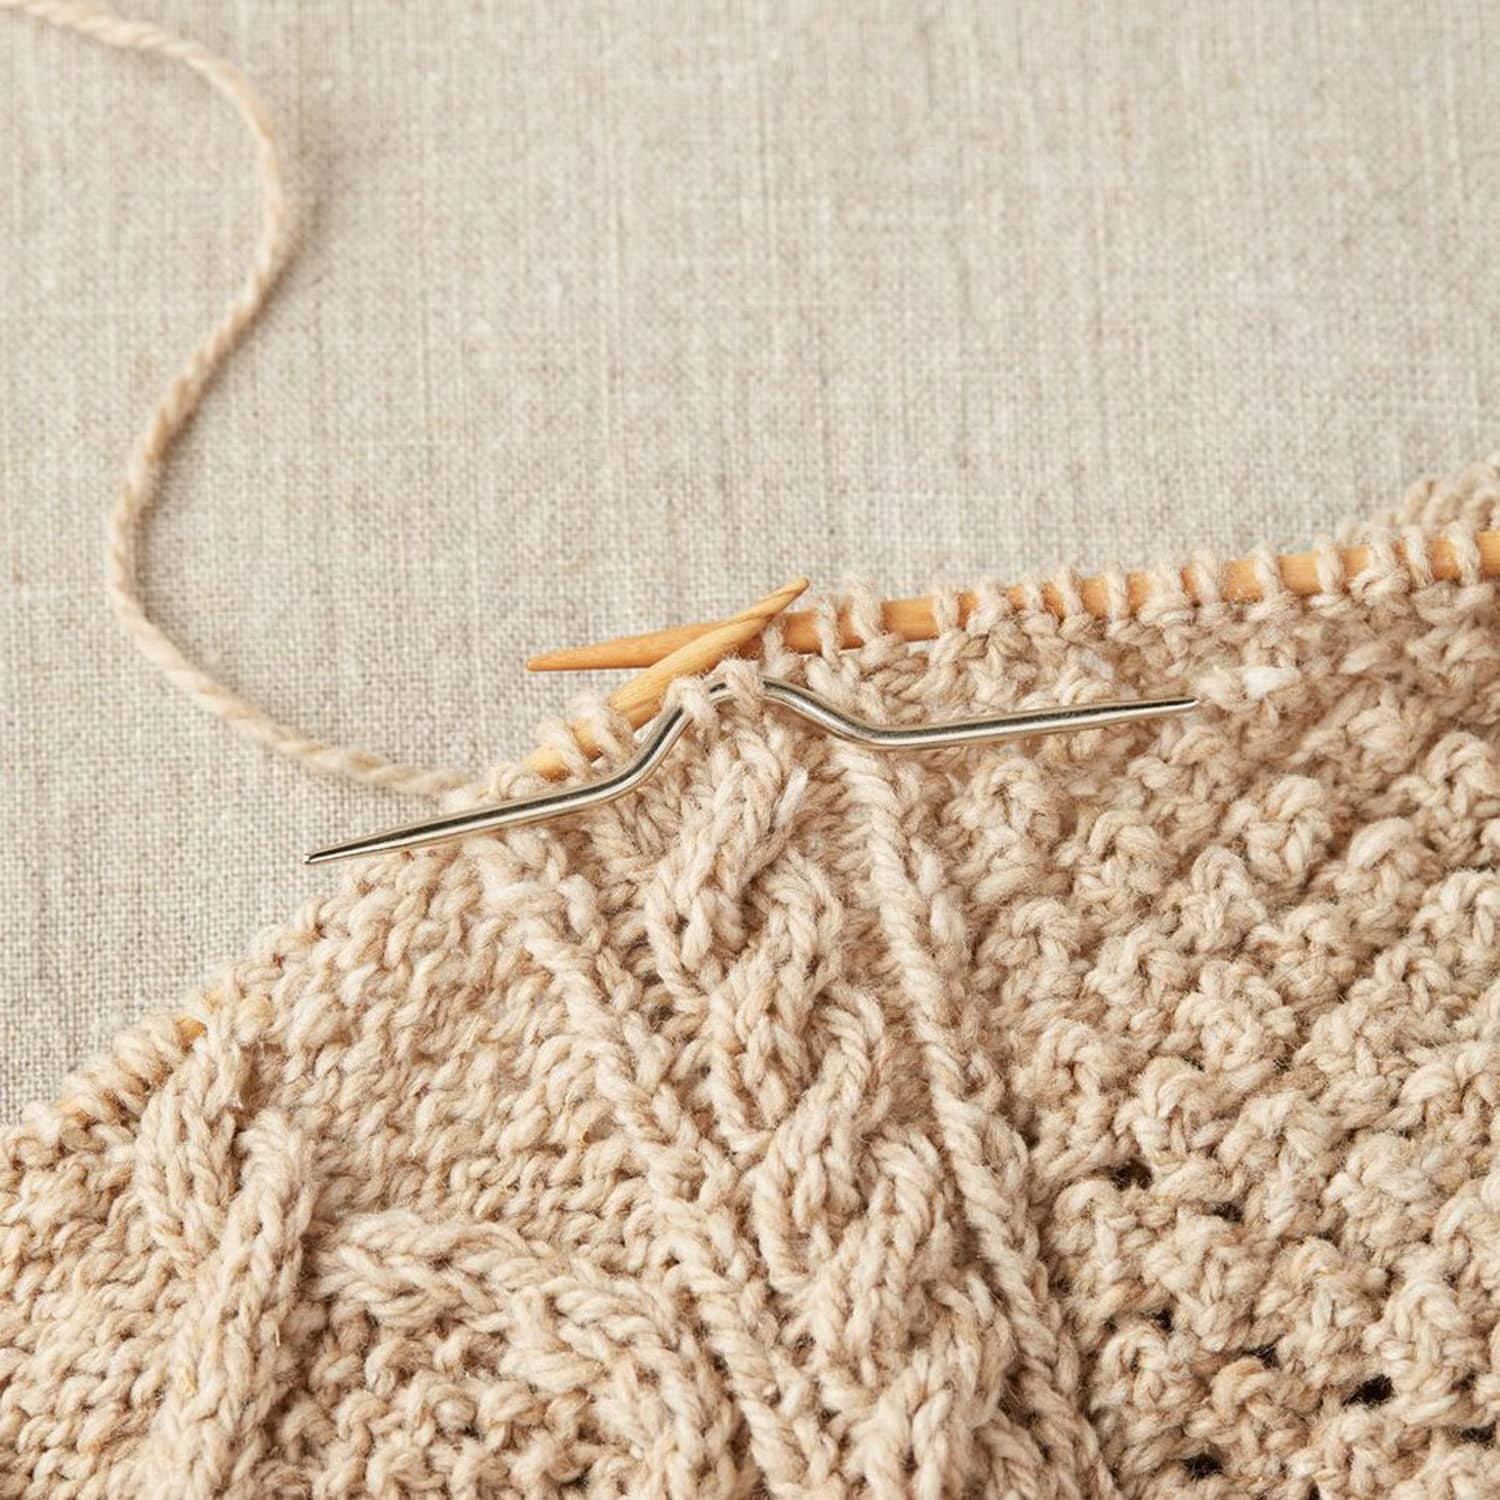 Cocoknits - Curved Cable Needles | Yarn Worx